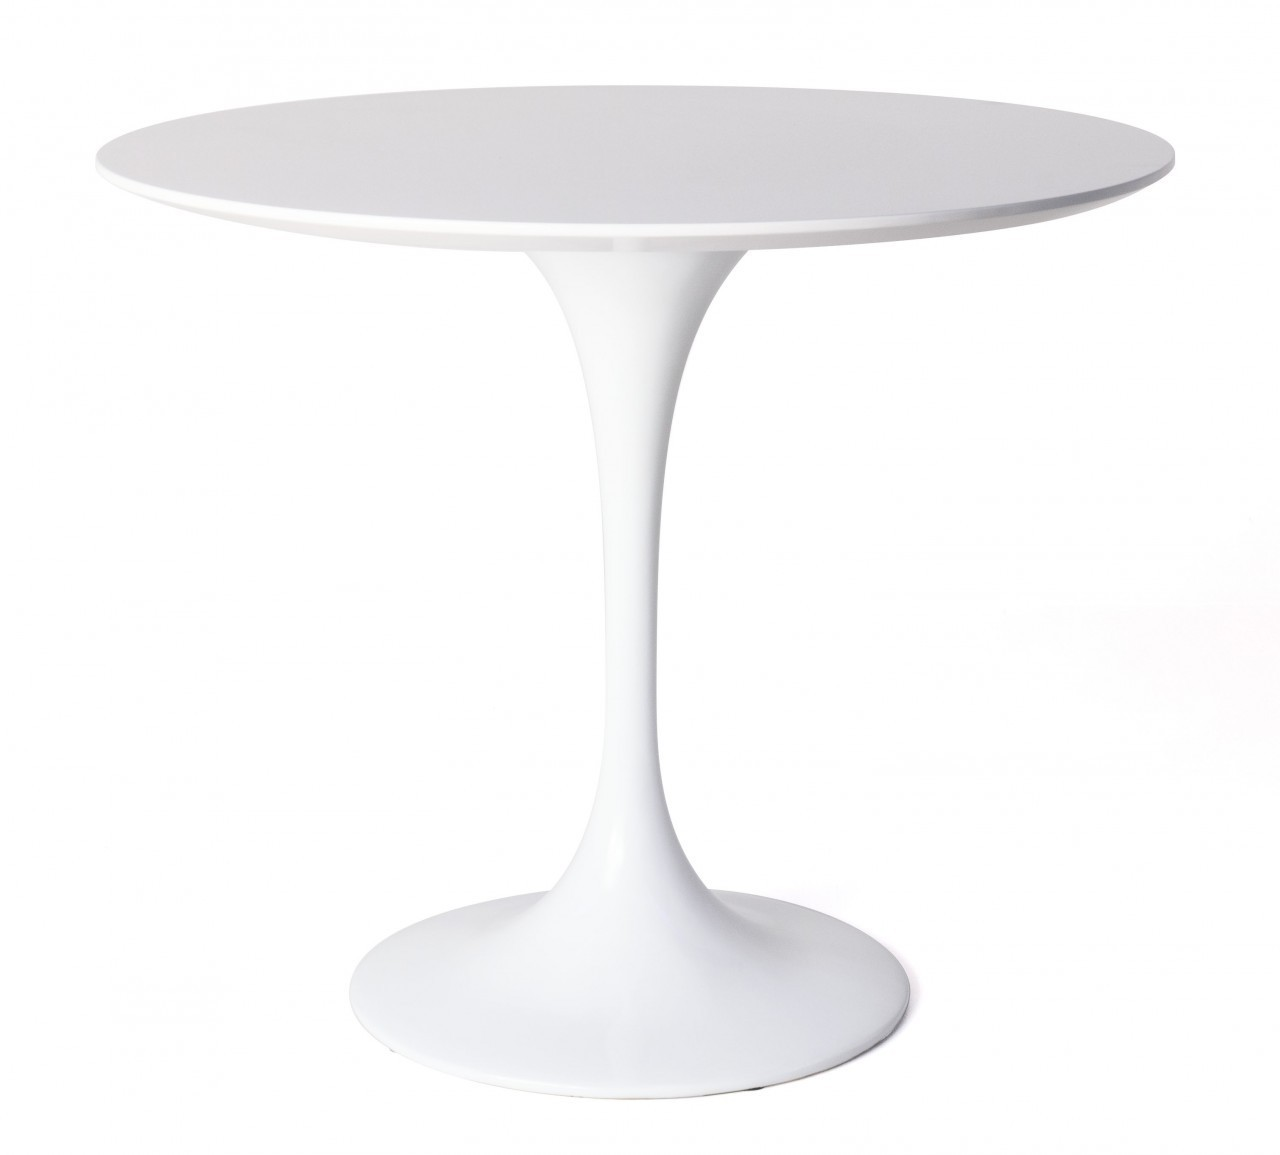 Eero Saarinen Dining Table Tulip Table 80cm Design